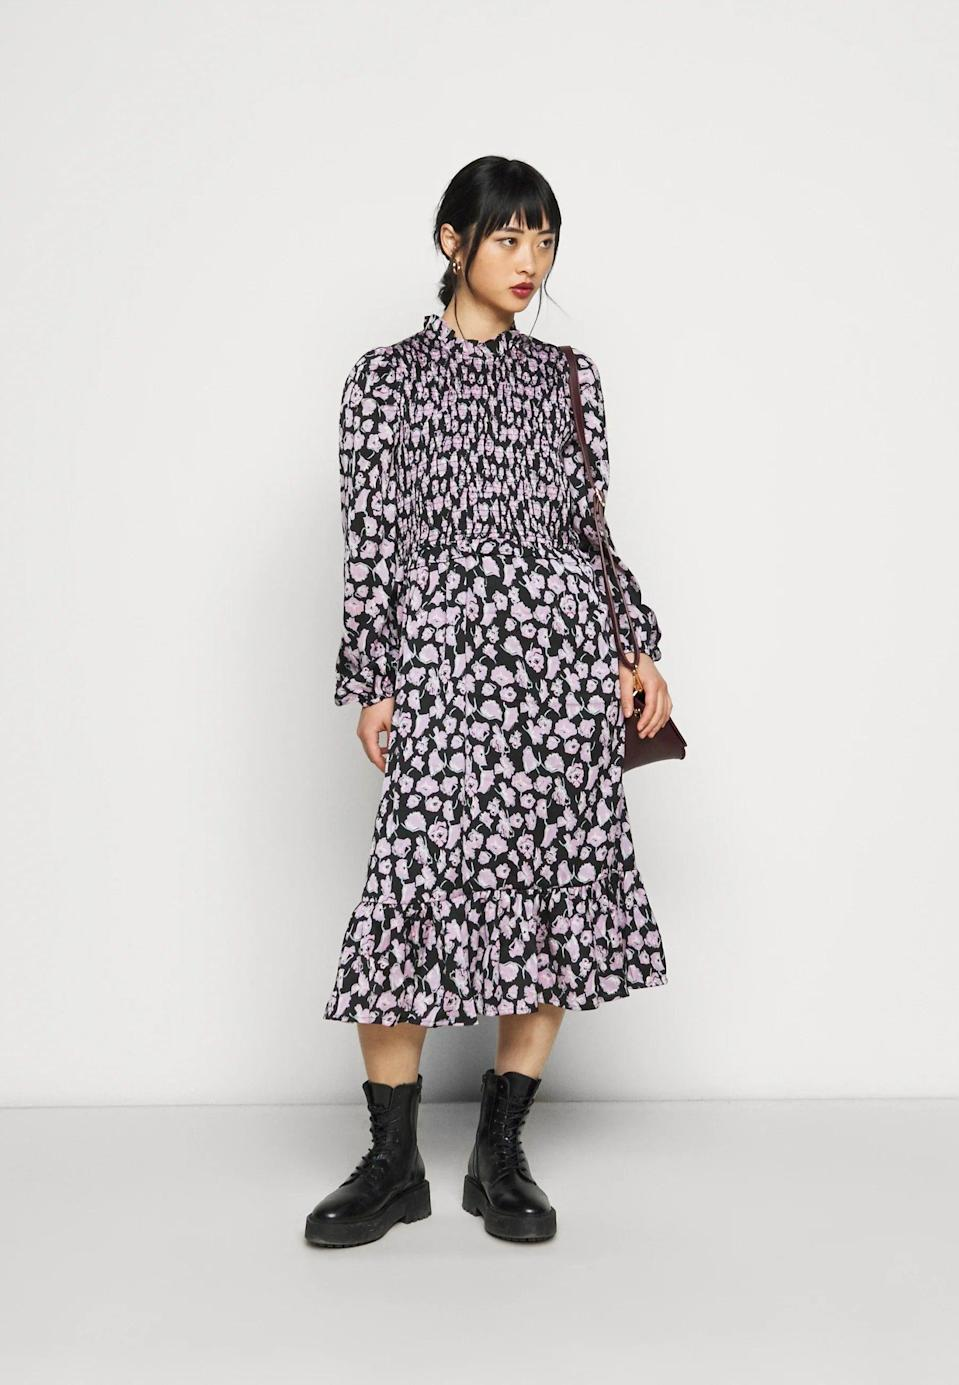 "<br><br><strong>Vero Moda Petite</strong> Smock Day Dress, $, available at <a href=""https://www.zalando.co.uk/vero-moda-petite-vmcharlotte-smock-dress-day-dress-black-vm021c07o-q11.html"" rel=""nofollow noopener"" target=""_blank"" data-ylk=""slk:Zalando"" class=""link rapid-noclick-resp"">Zalando</a>"